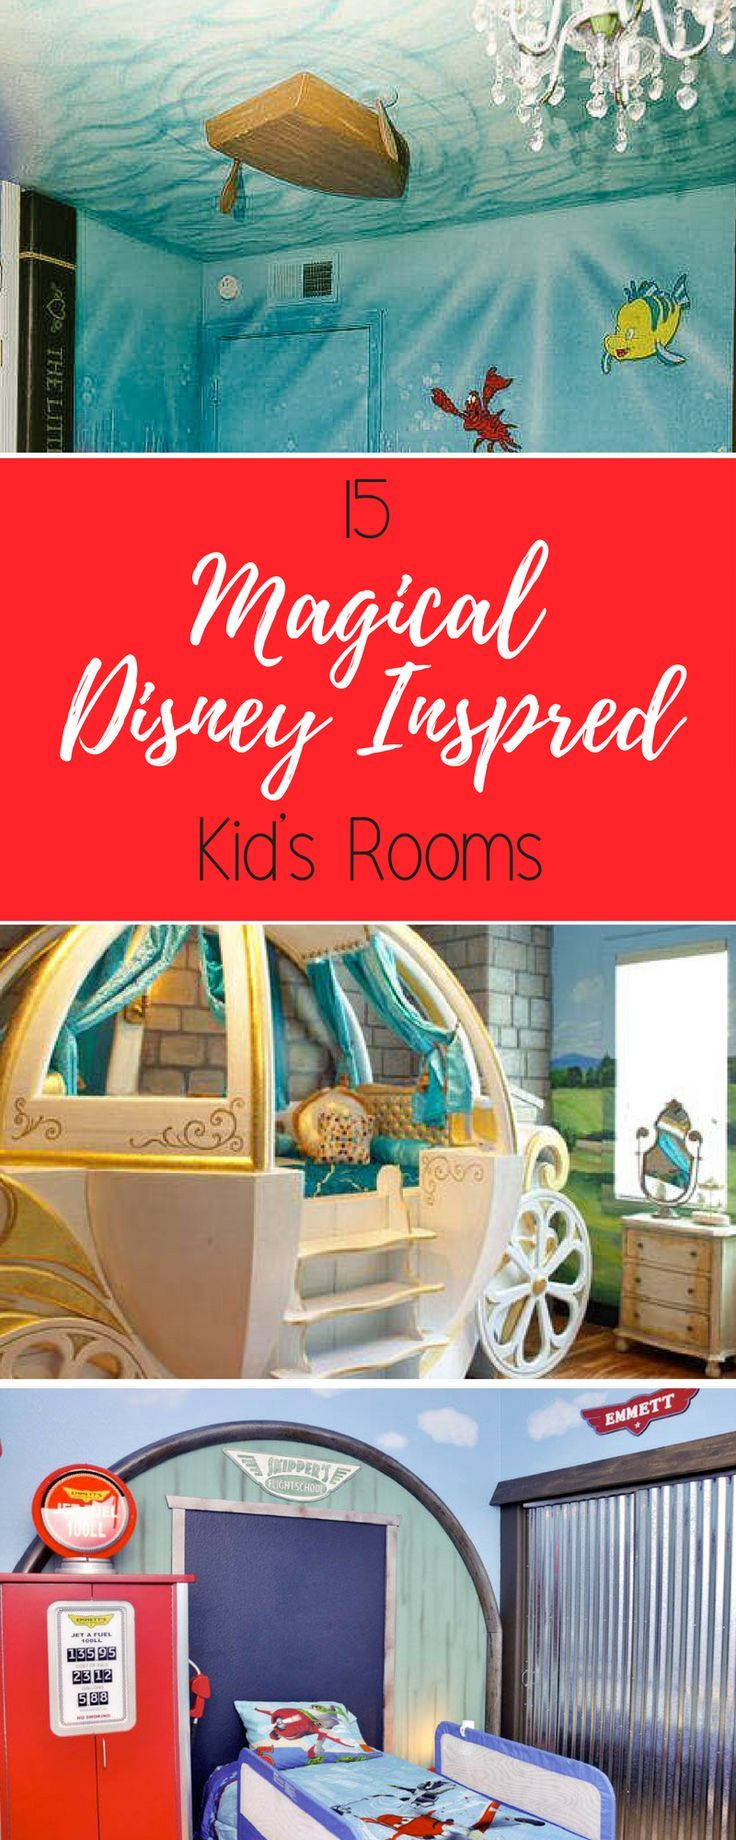 15 Magical Disney Inspired Bedrooms images